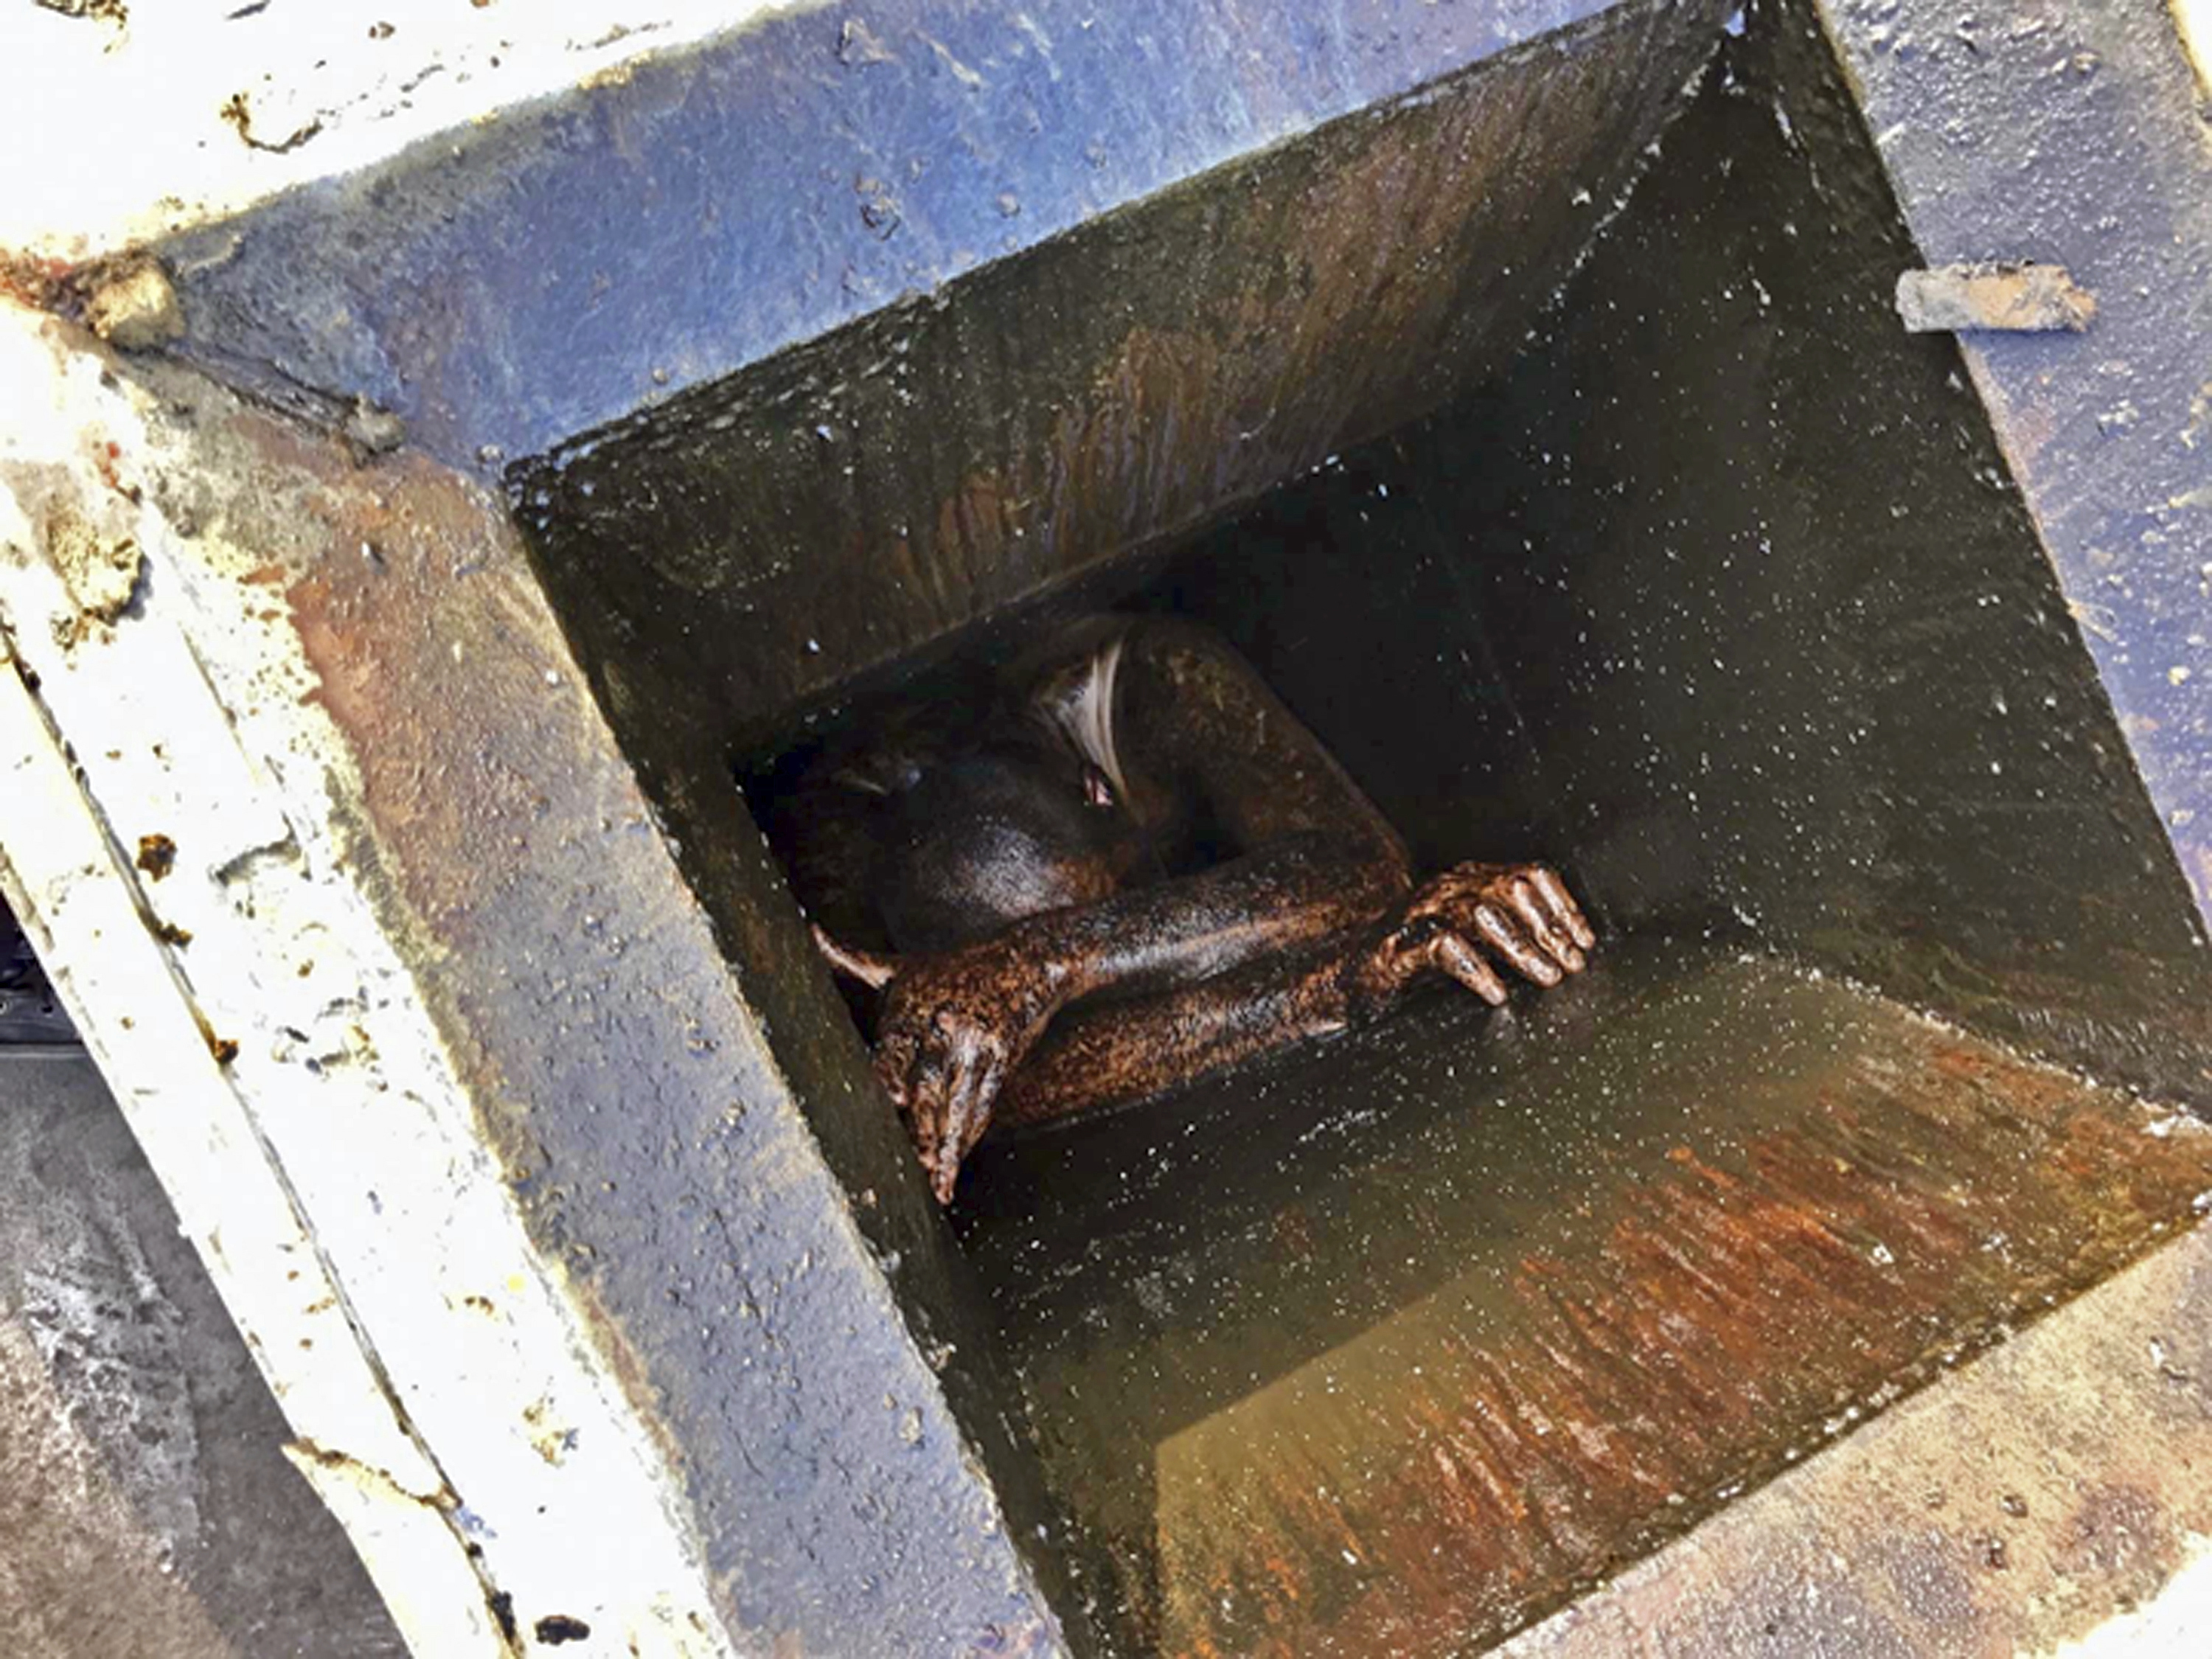 Man Trapped In Grease Vent Of San Lorenzo Chinese Restaurant For Two Days The Washington Post